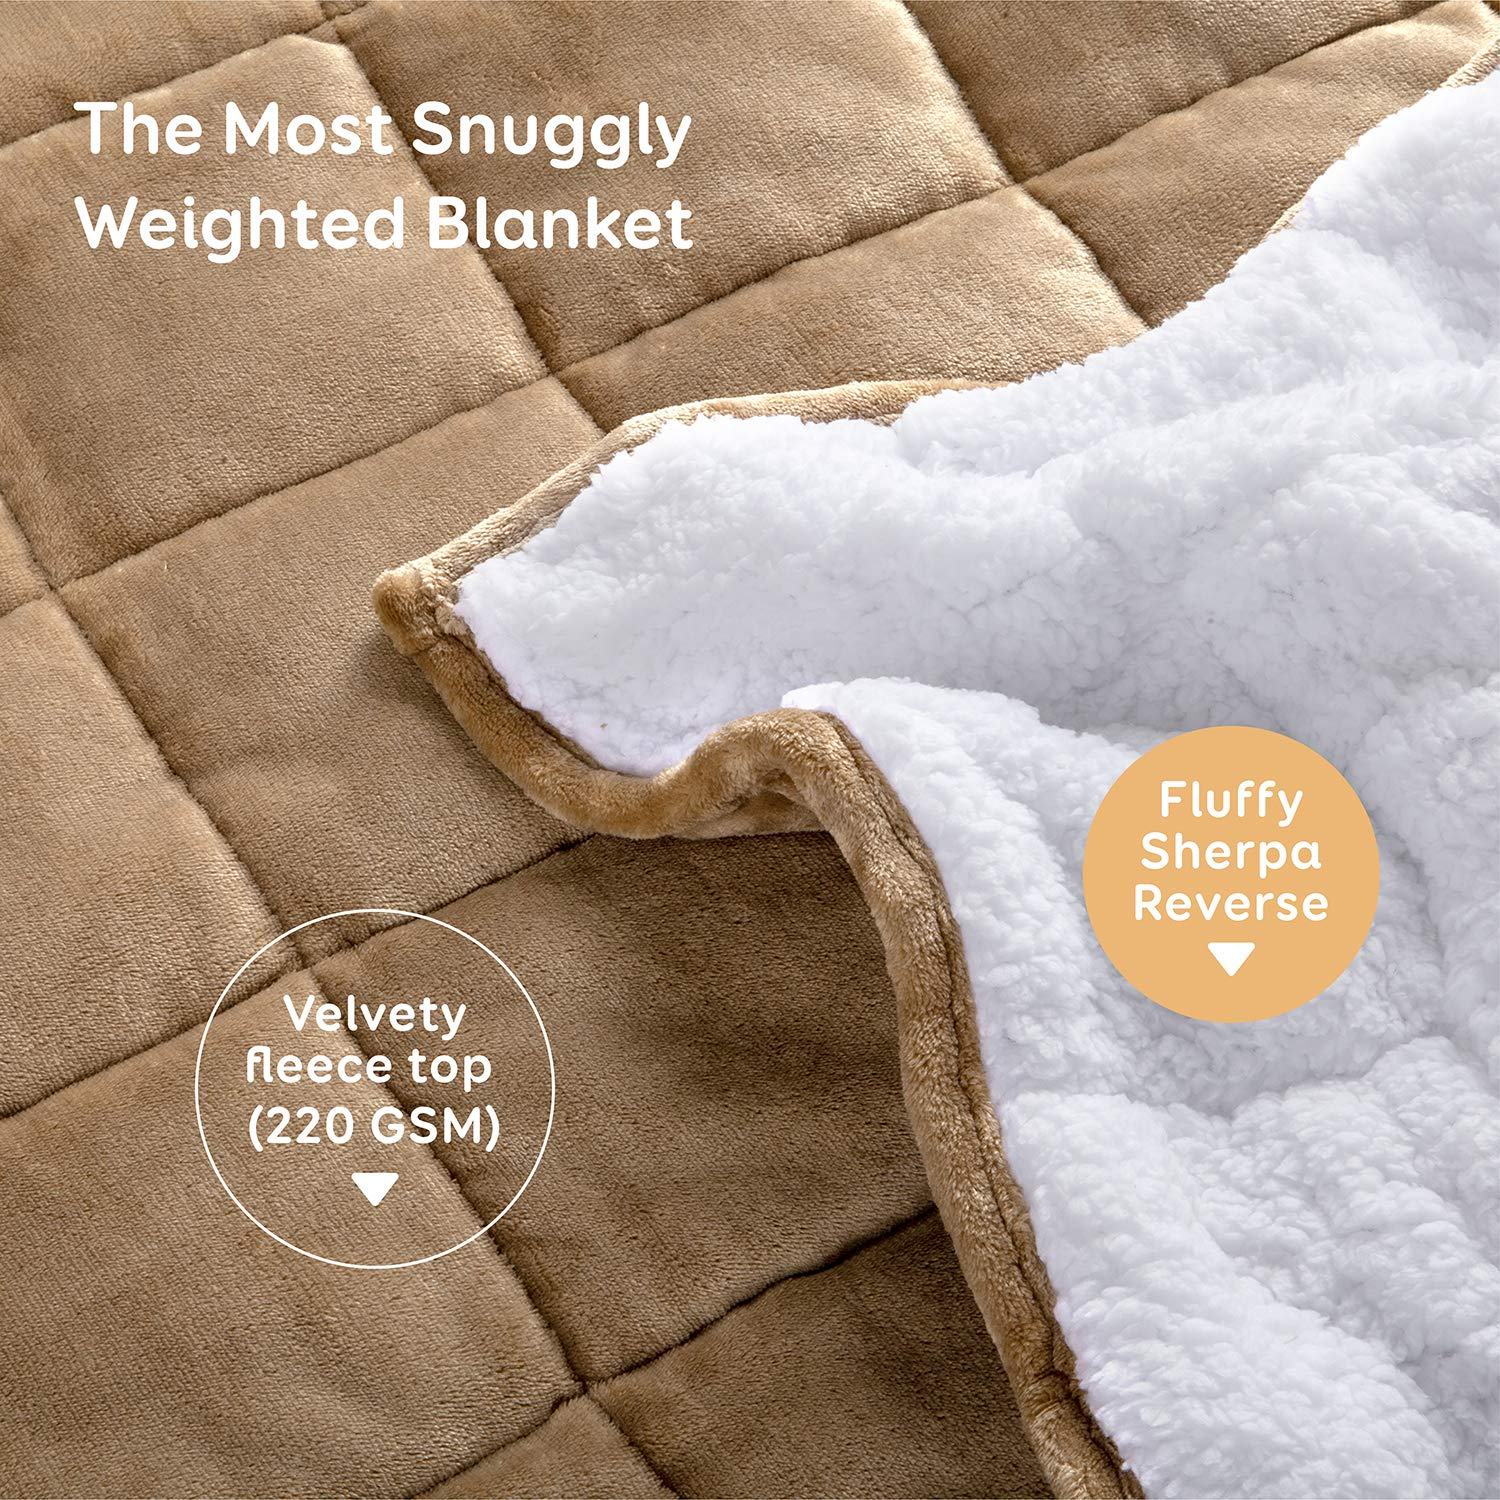 BUZIO Sherpa Fleece Weighted Blanket for Adult, 15 lbs Heavy Fuzzy Throw Blanket with Soft Plush Flannel, Dual Sided Queen Size Cozy Fluffy Blanket, 60 x 80 inches, Light Tan